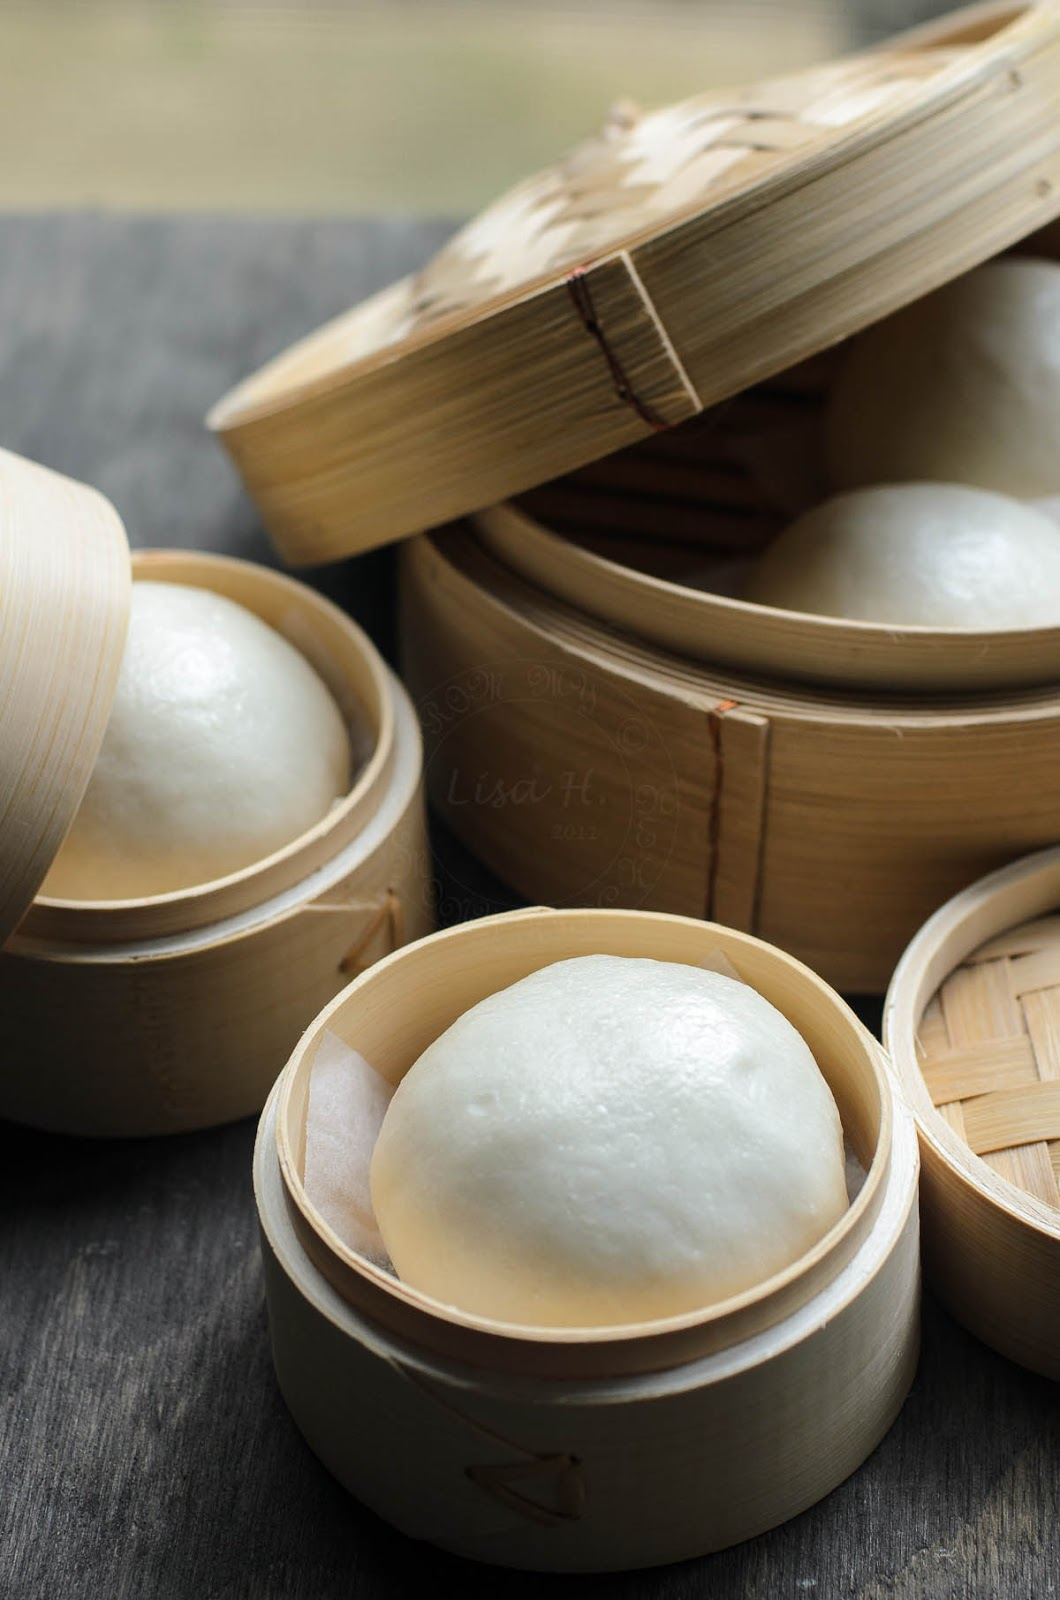 Soft and pillowy Red bean steamed buns